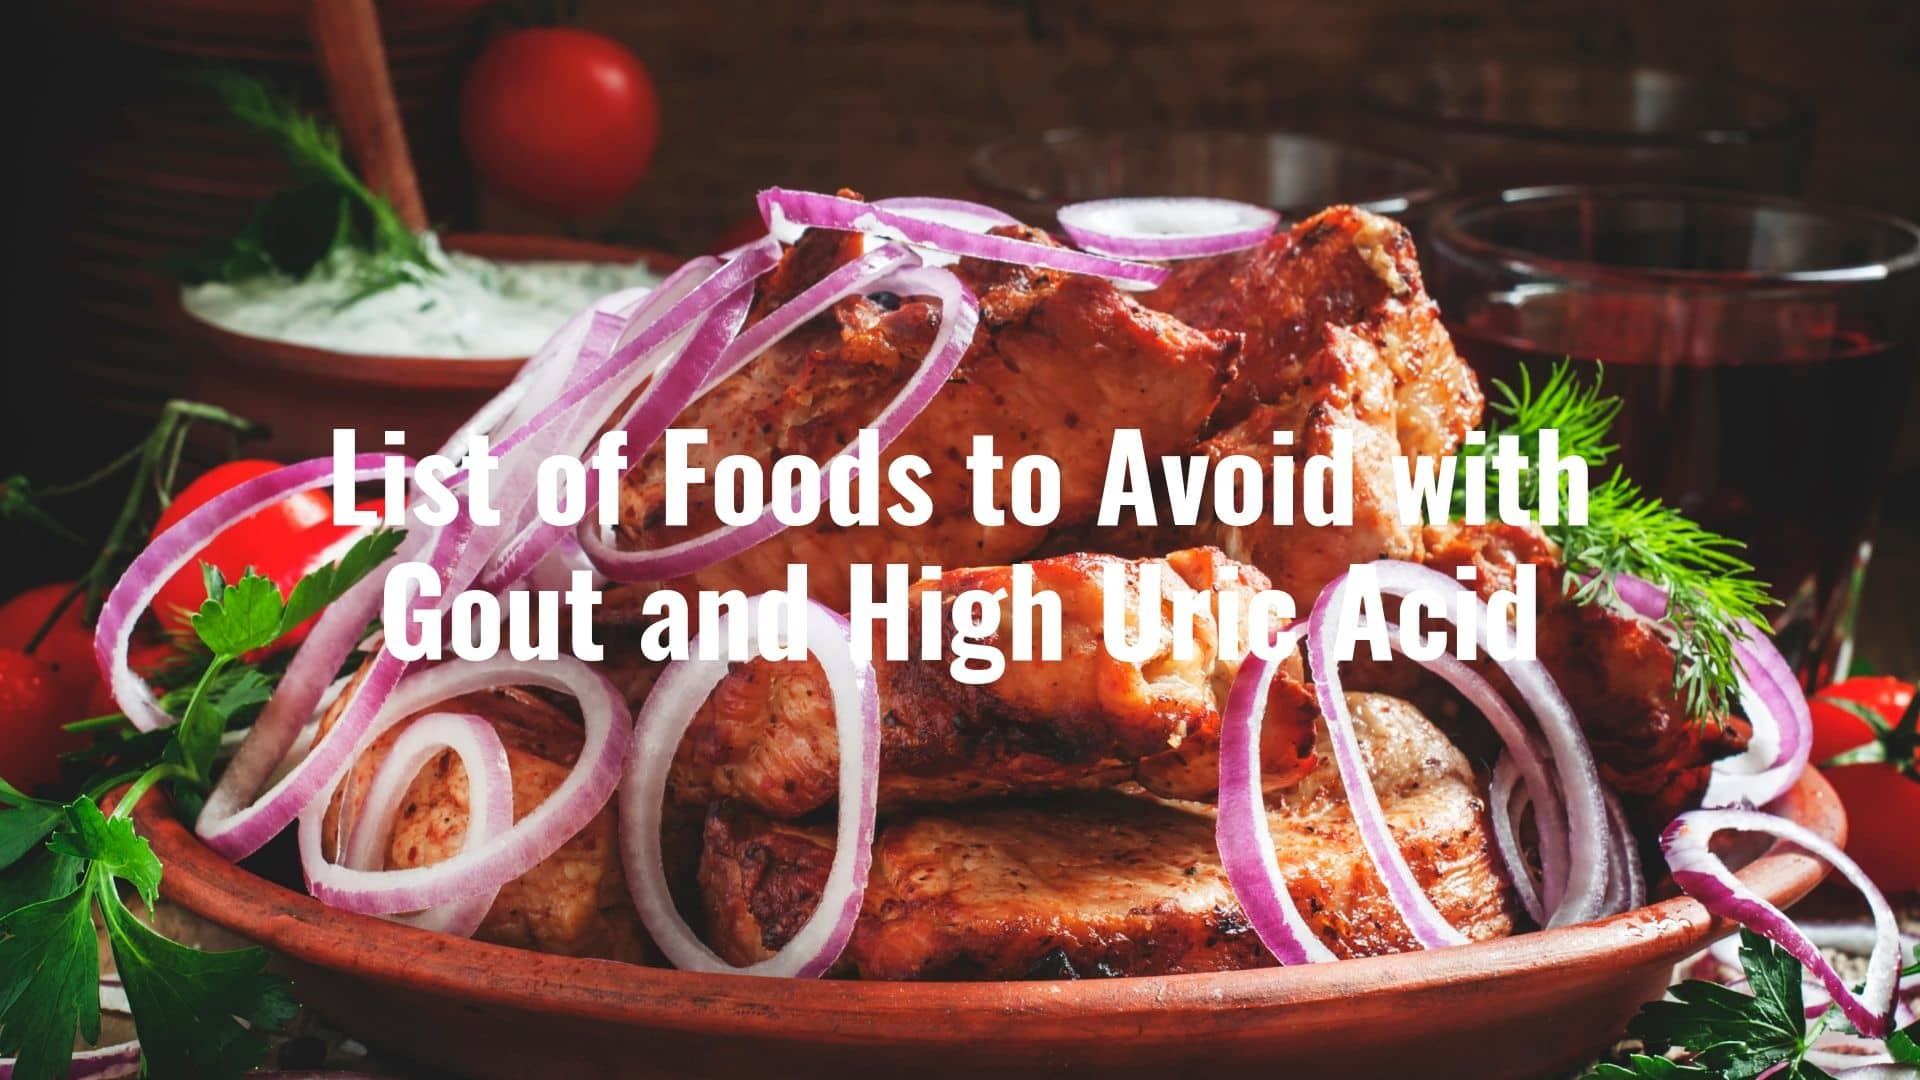 List of Foods to Avoid with Gout and High Uric Acid